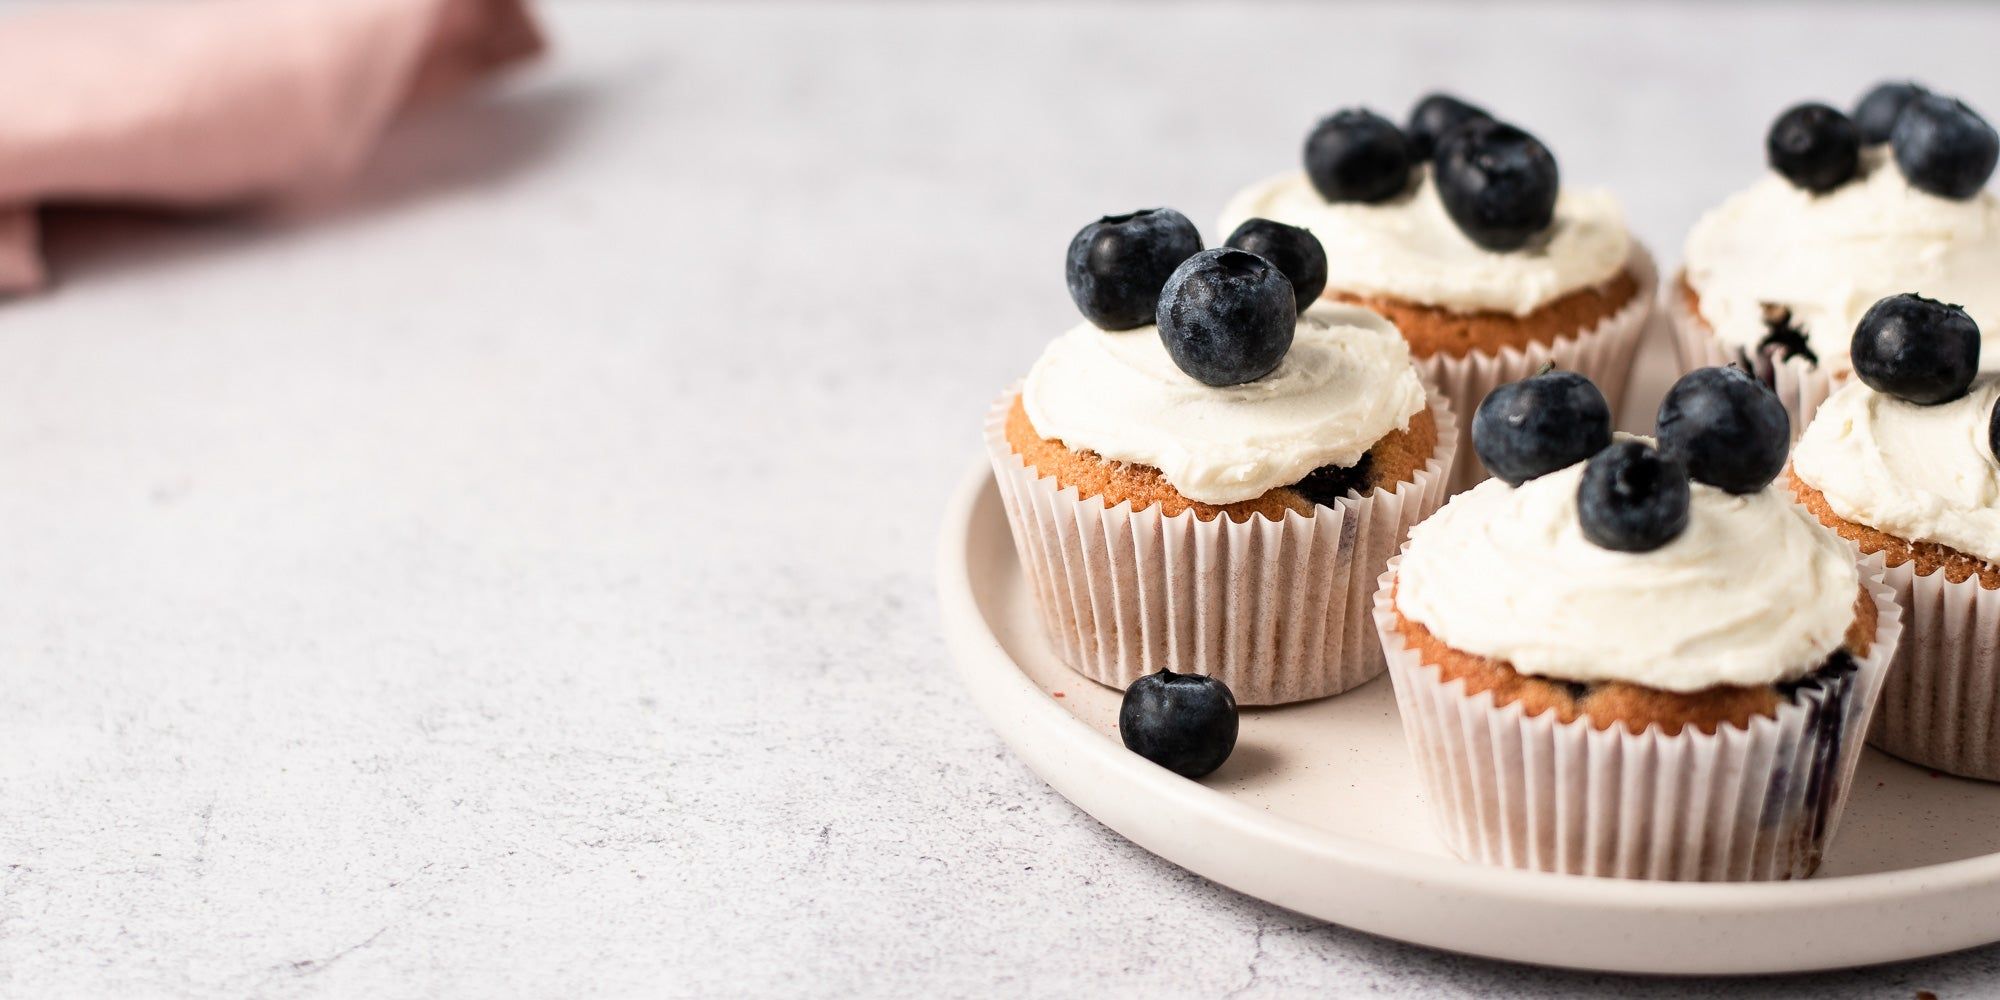 Cupcakes topped with icing and blueberries